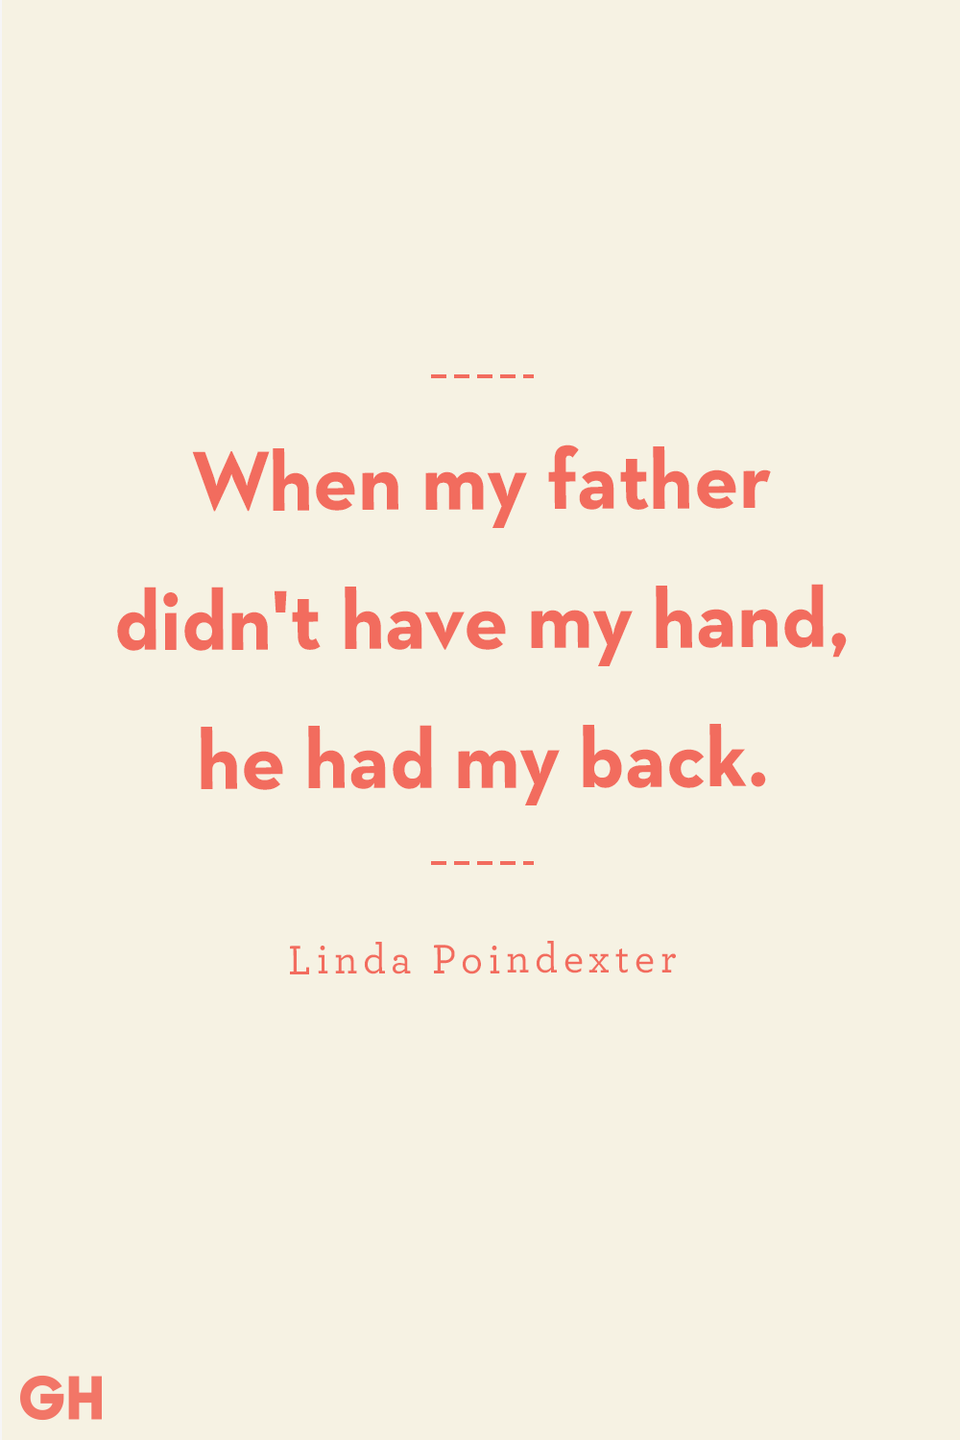 "<p>When my father didn't have my hand, he had my back.</p><p><strong>RELATED:</strong> <a href=""https://www.goodhousekeeping.com/holidays/fathers-day/g2419/fathers-day-quotes/"" rel=""nofollow noopener"" target=""_blank"" data-ylk=""slk:Father and Son Quotes That Will Make Dad's Day"" class=""link rapid-noclick-resp"">Father and Son Quotes That Will Make Dad's Day</a></p>"